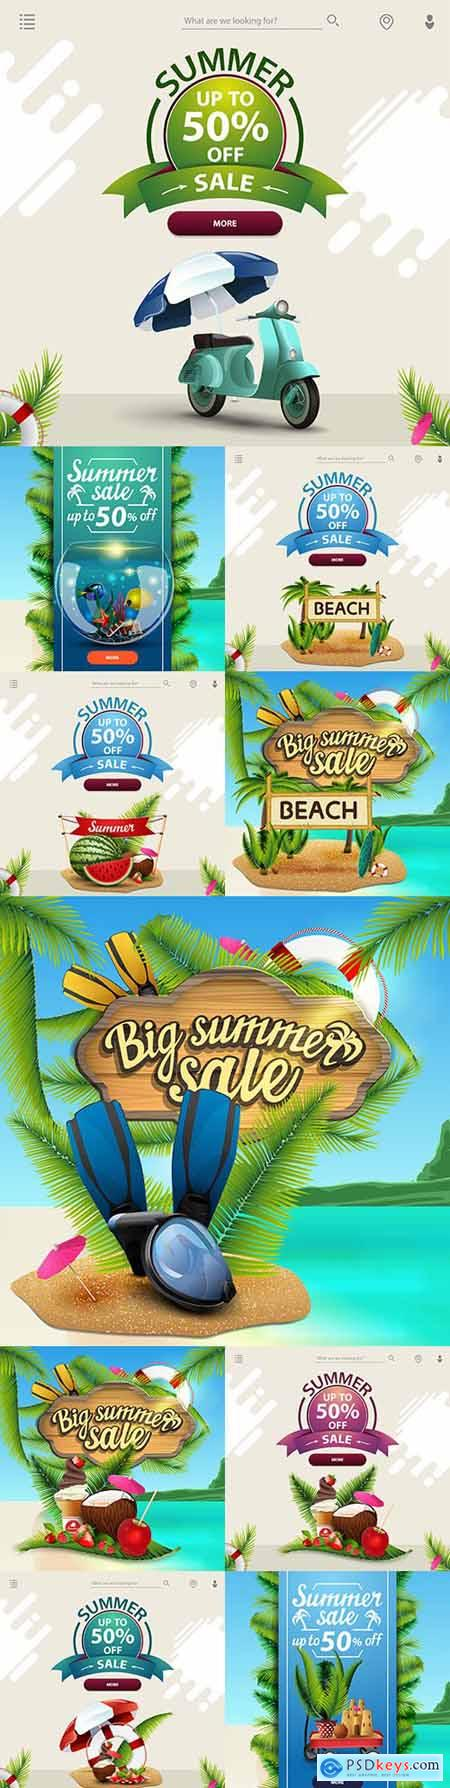 Summer sale and discount template for your business